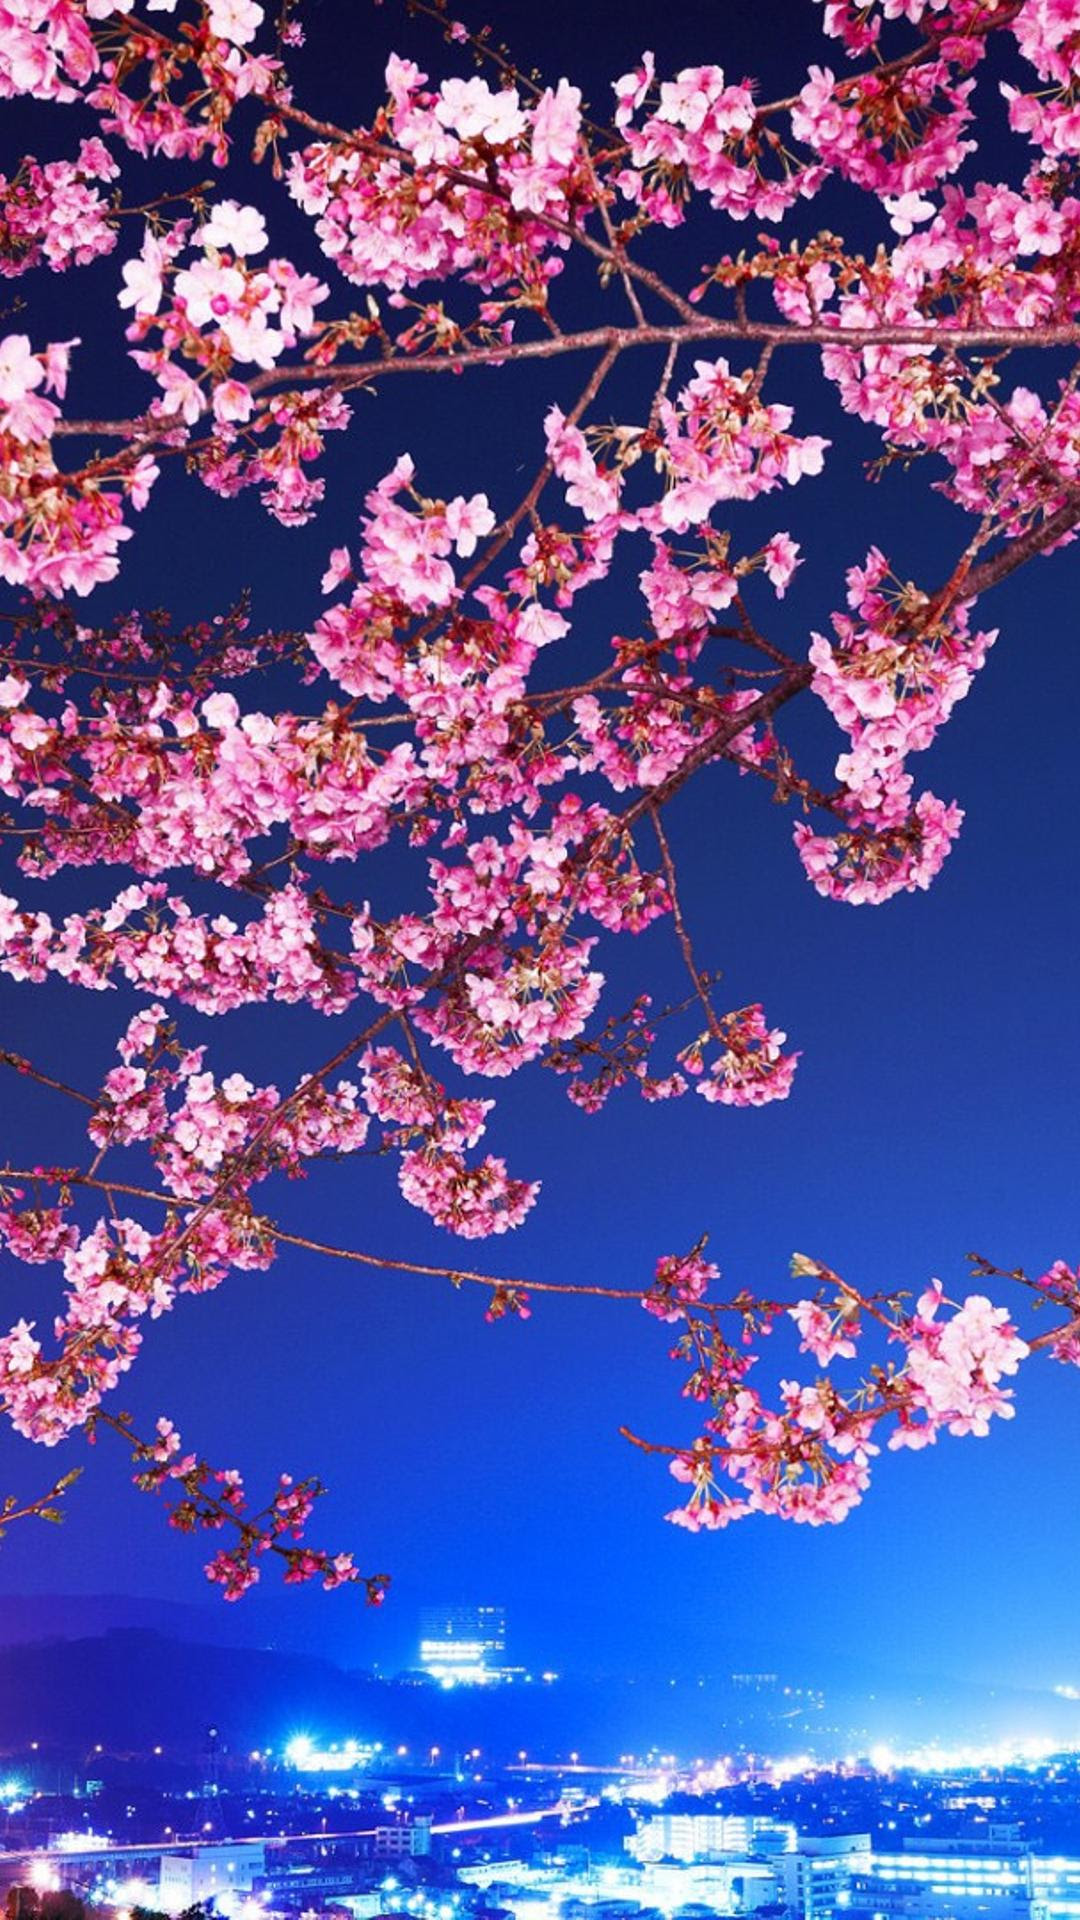 Pink flowers on branches - Cherry blossom Wallpaper ...